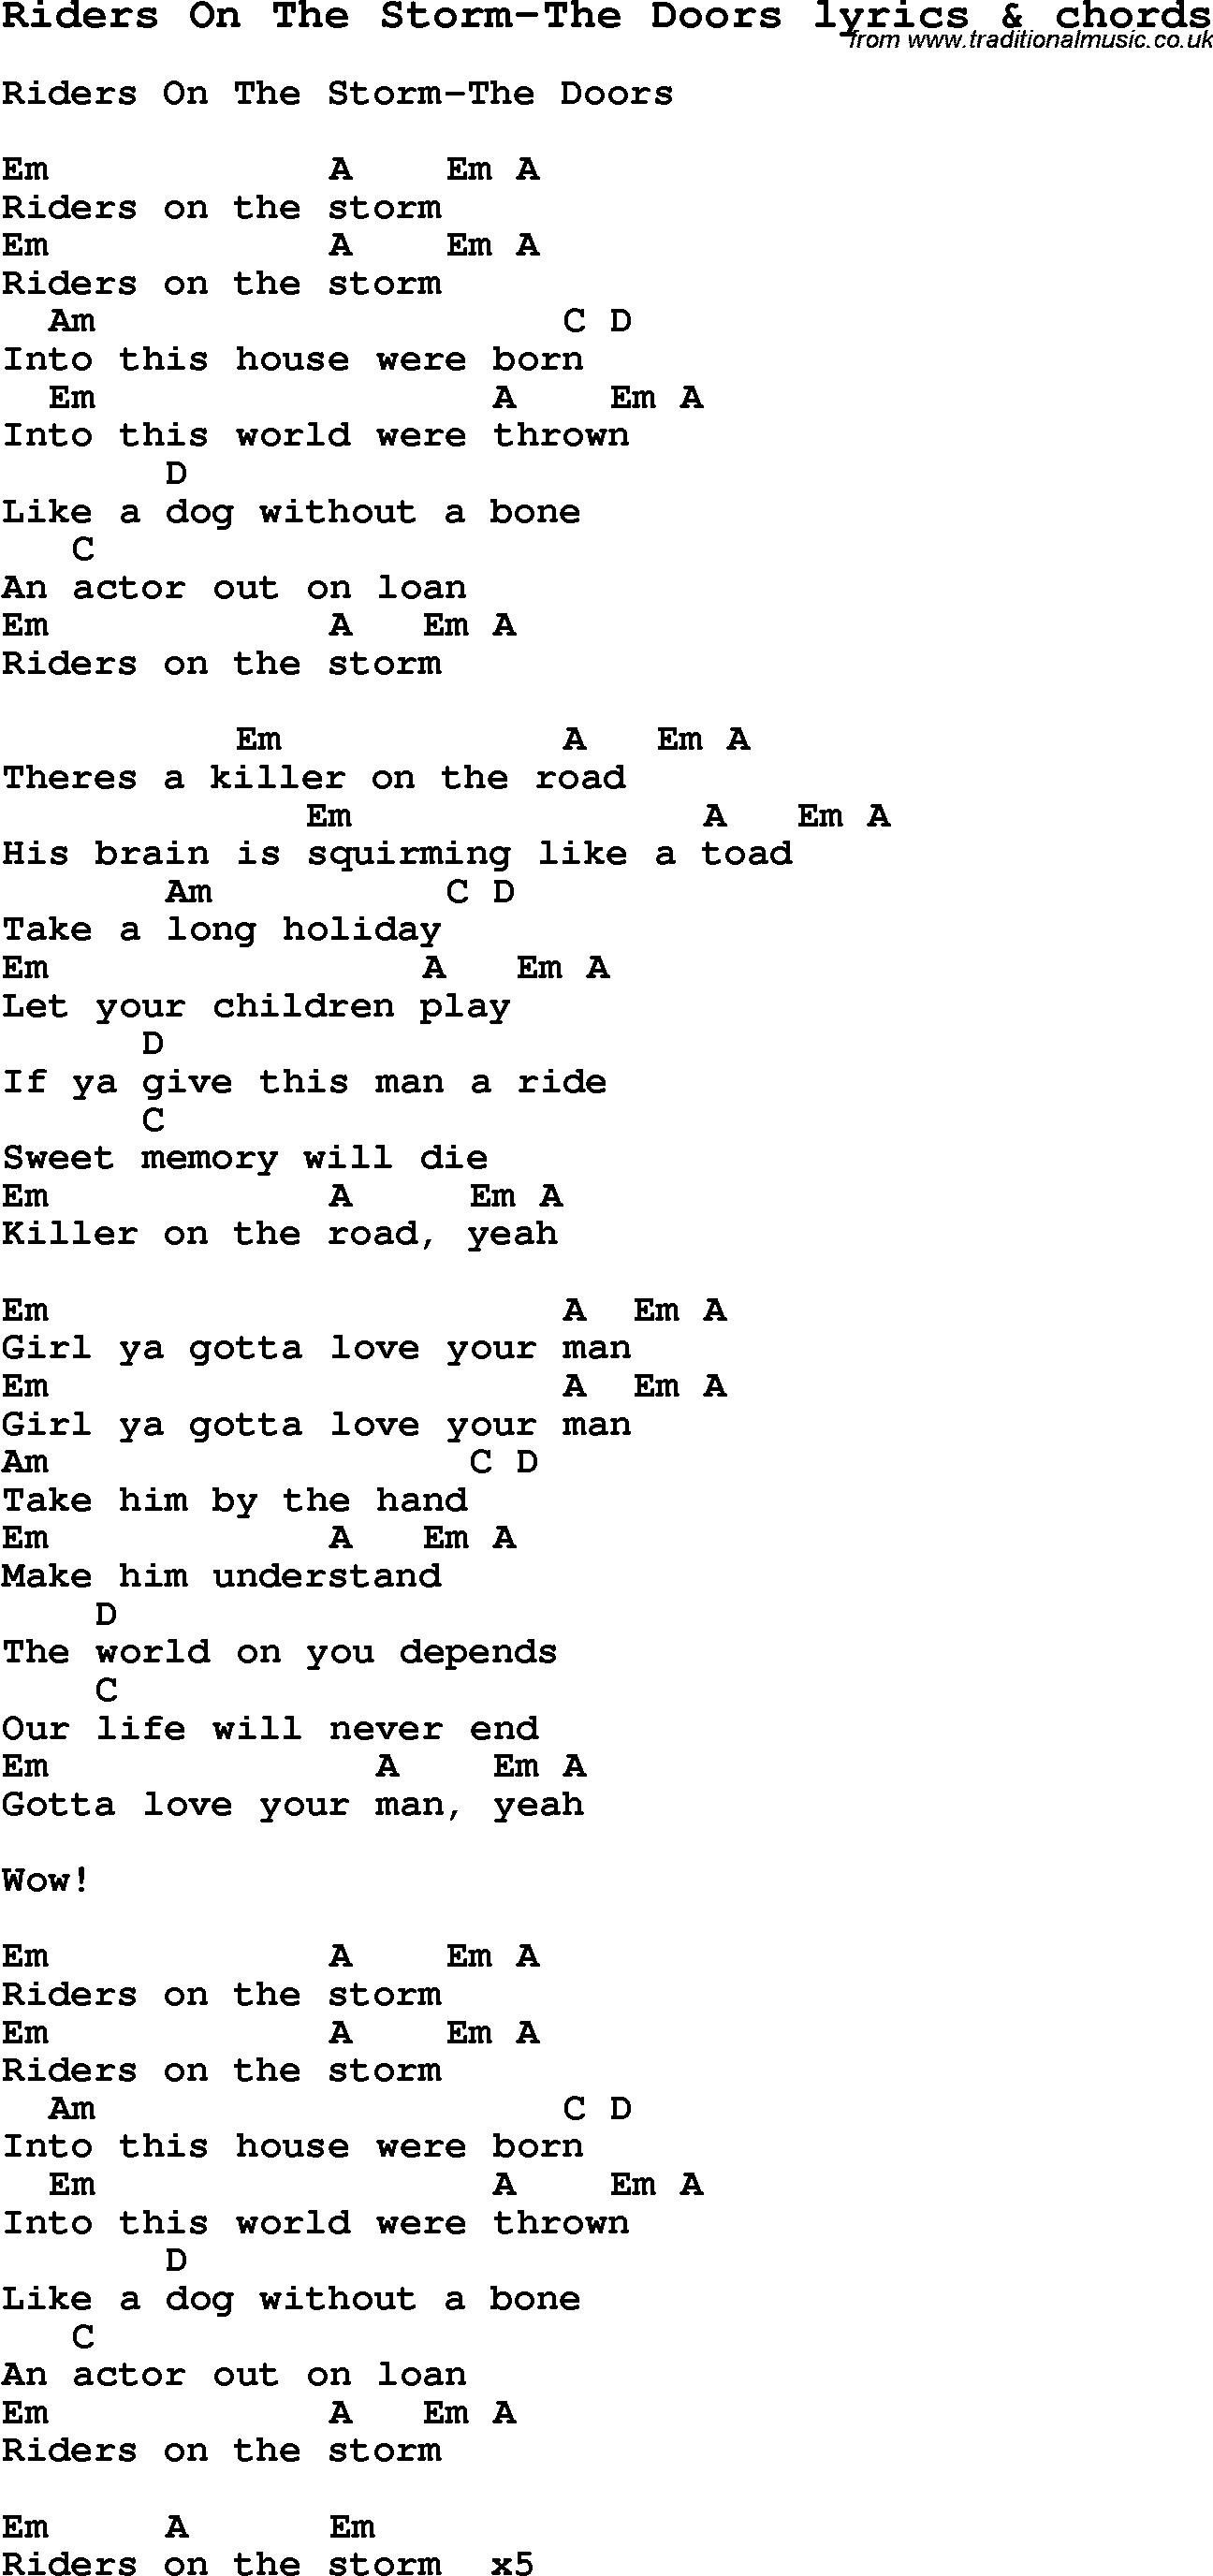 Love Song Lyrics for Riders On The Storm-The Doors with chords for Ukulele  sc 1 st  Traditional Music Library : doors lyrics - pezcame.com